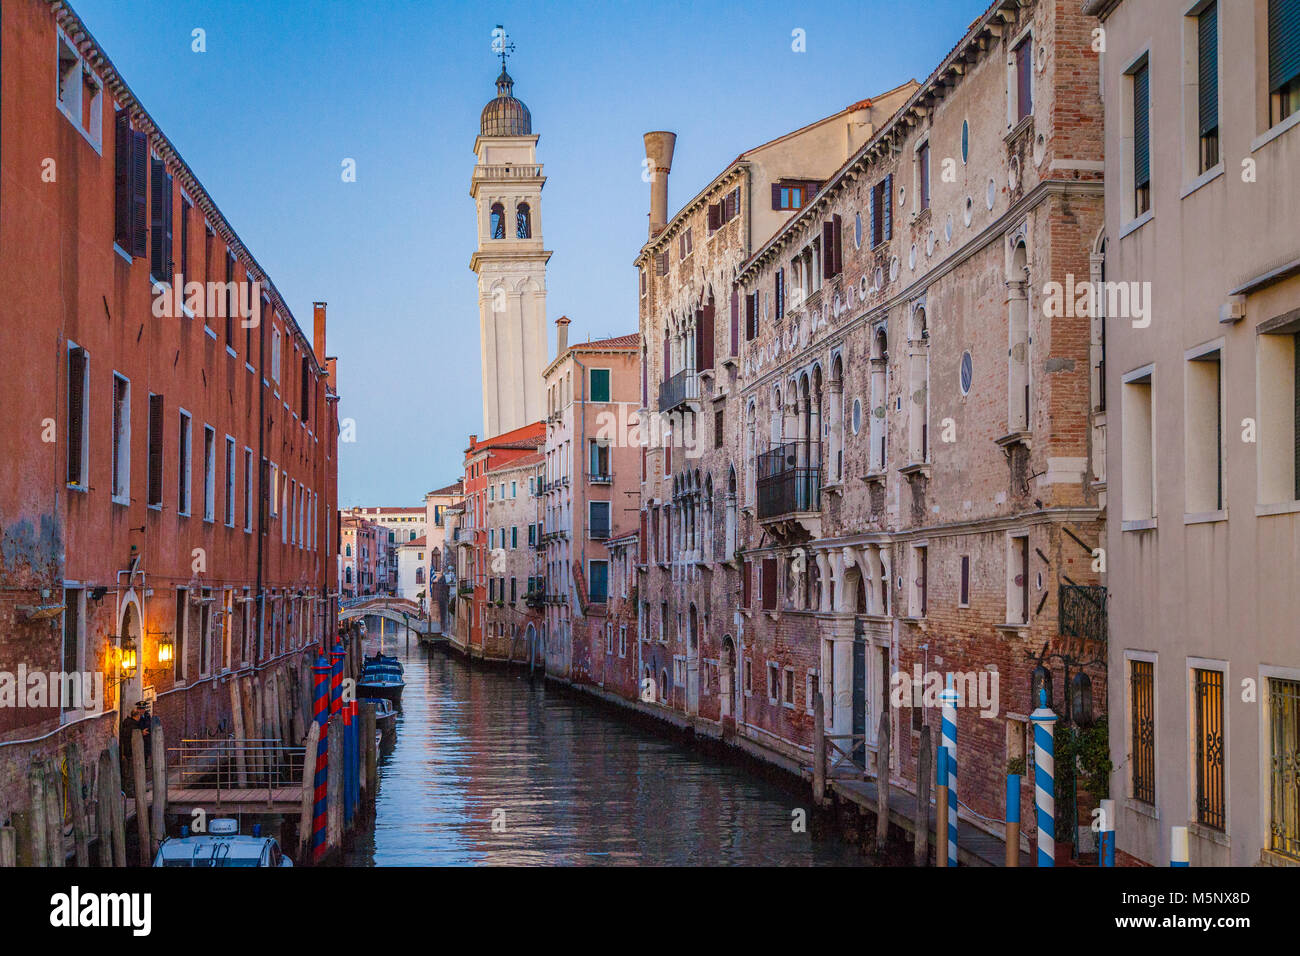 Classic Venice city scene with beautiful canal and church tower in the background in beautiful evening twilight - Stock Image